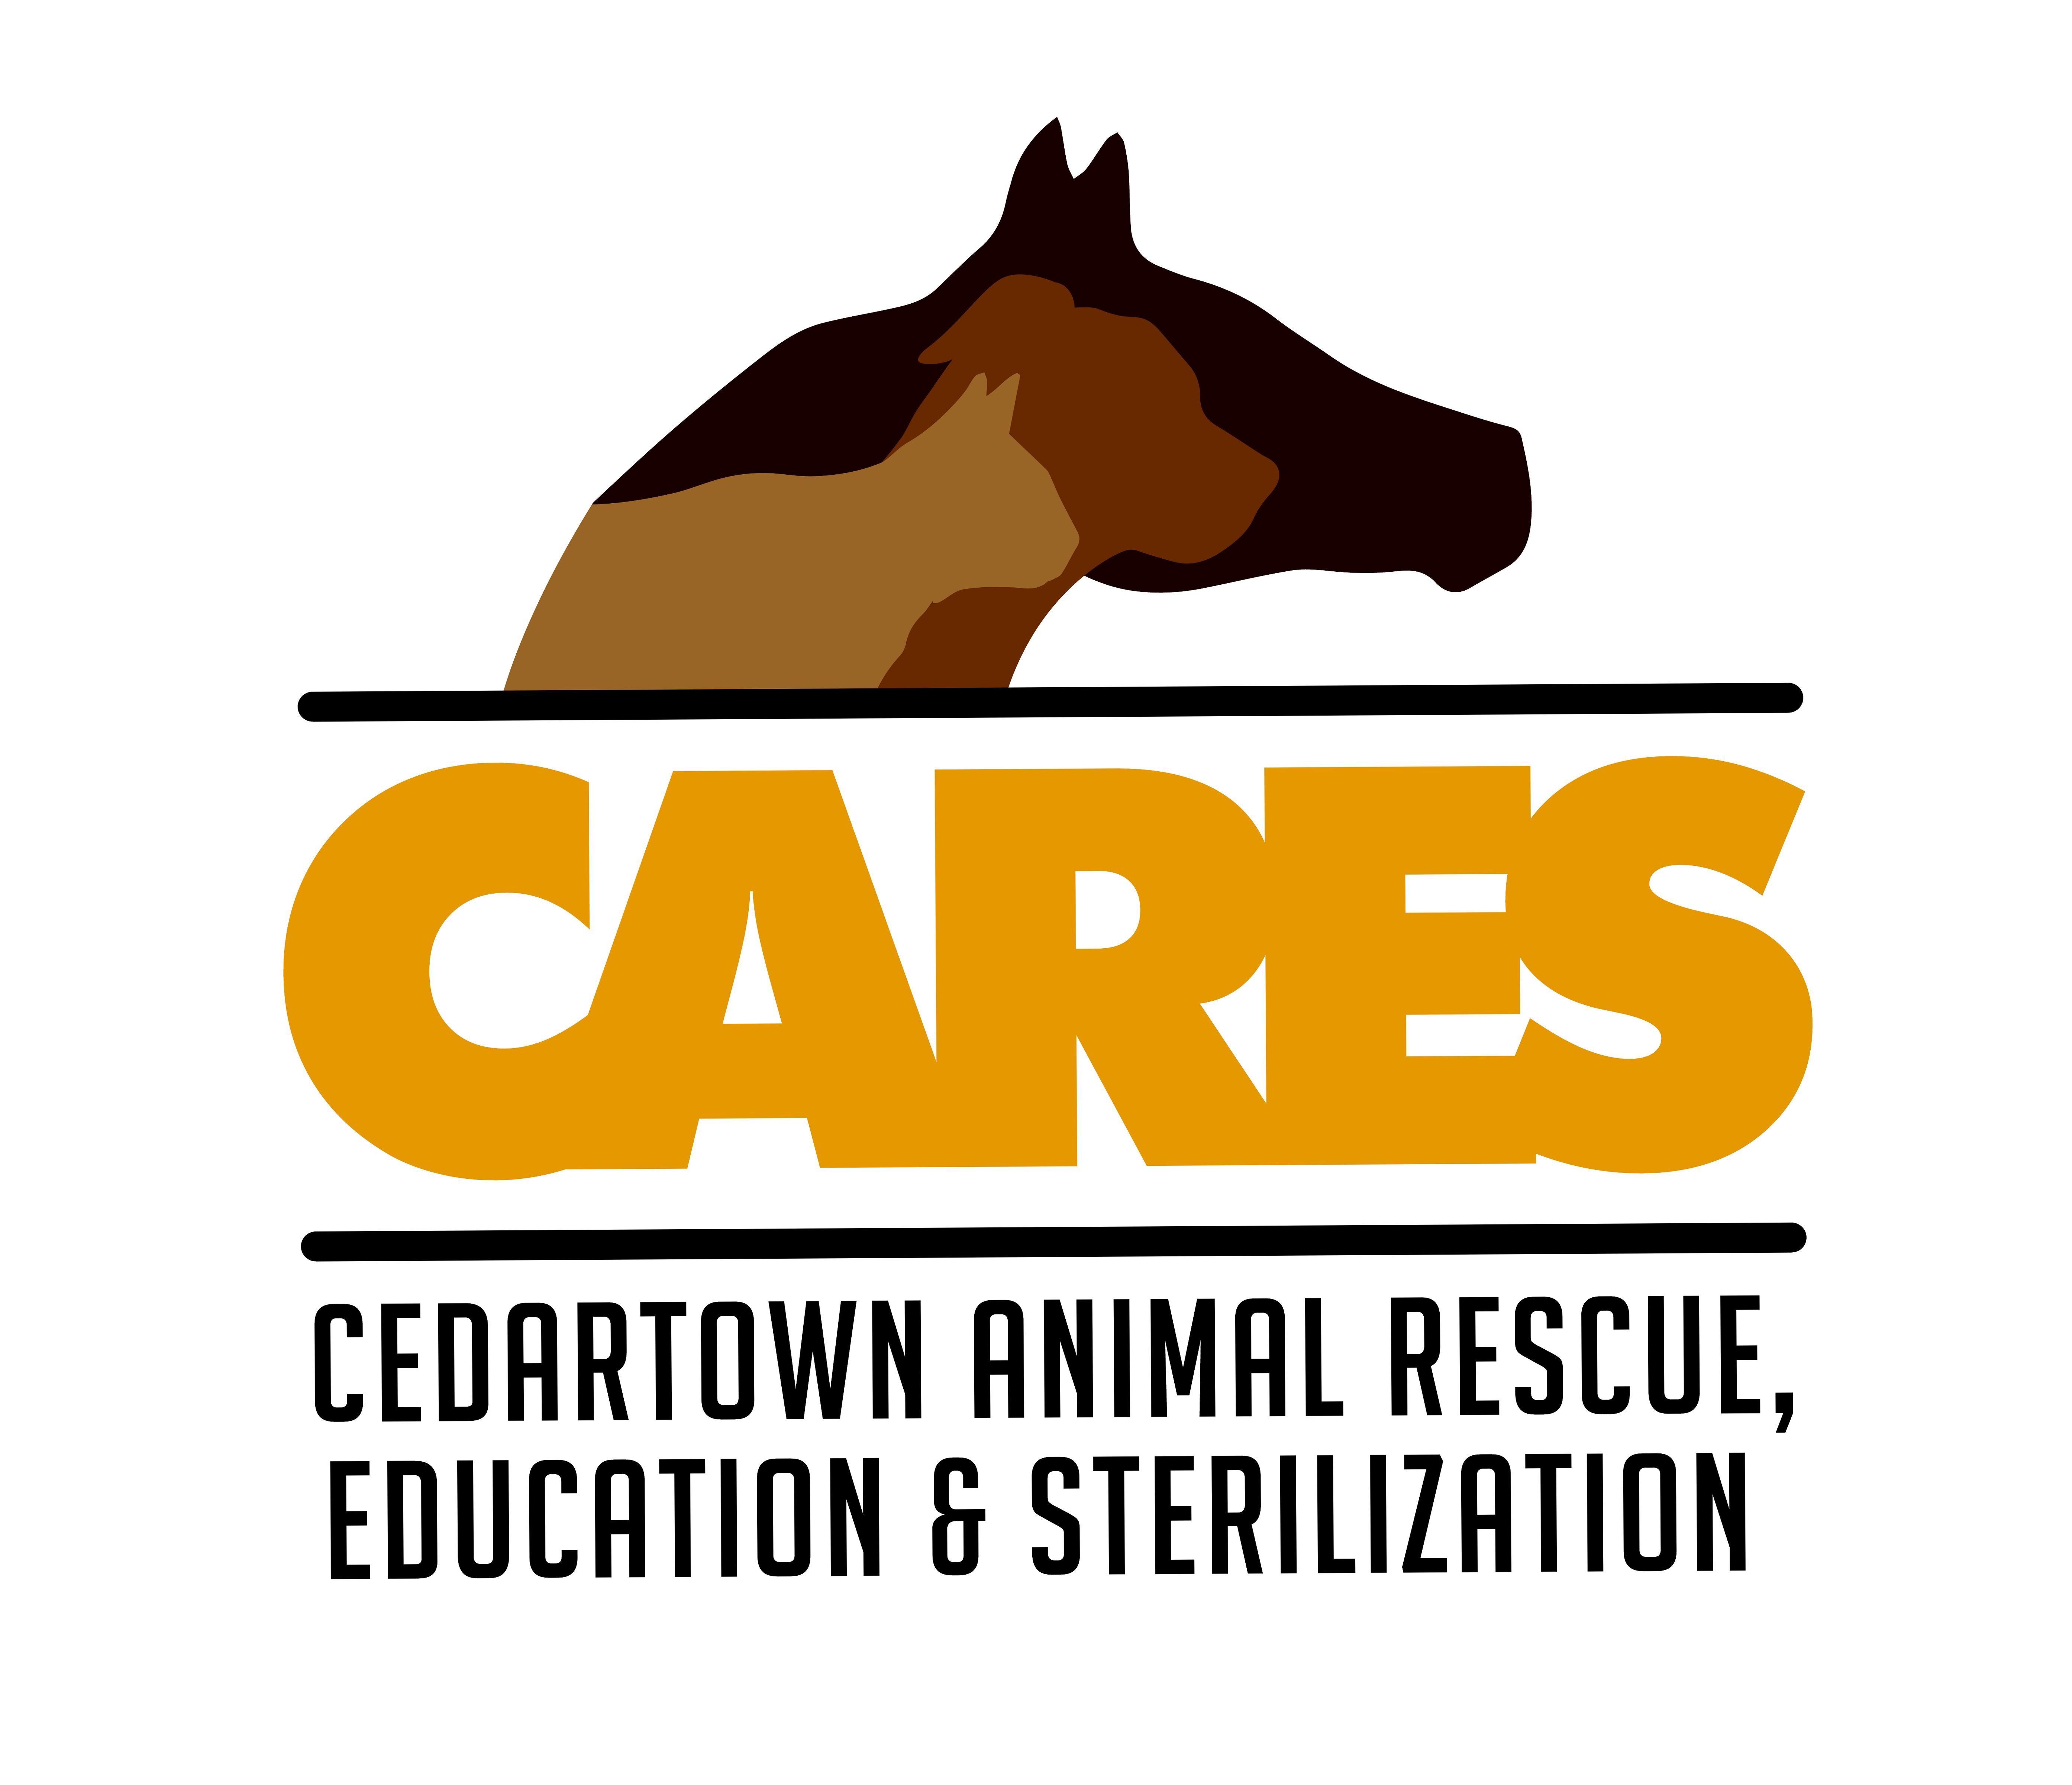 Cedartown Animal Rescue, Education & S